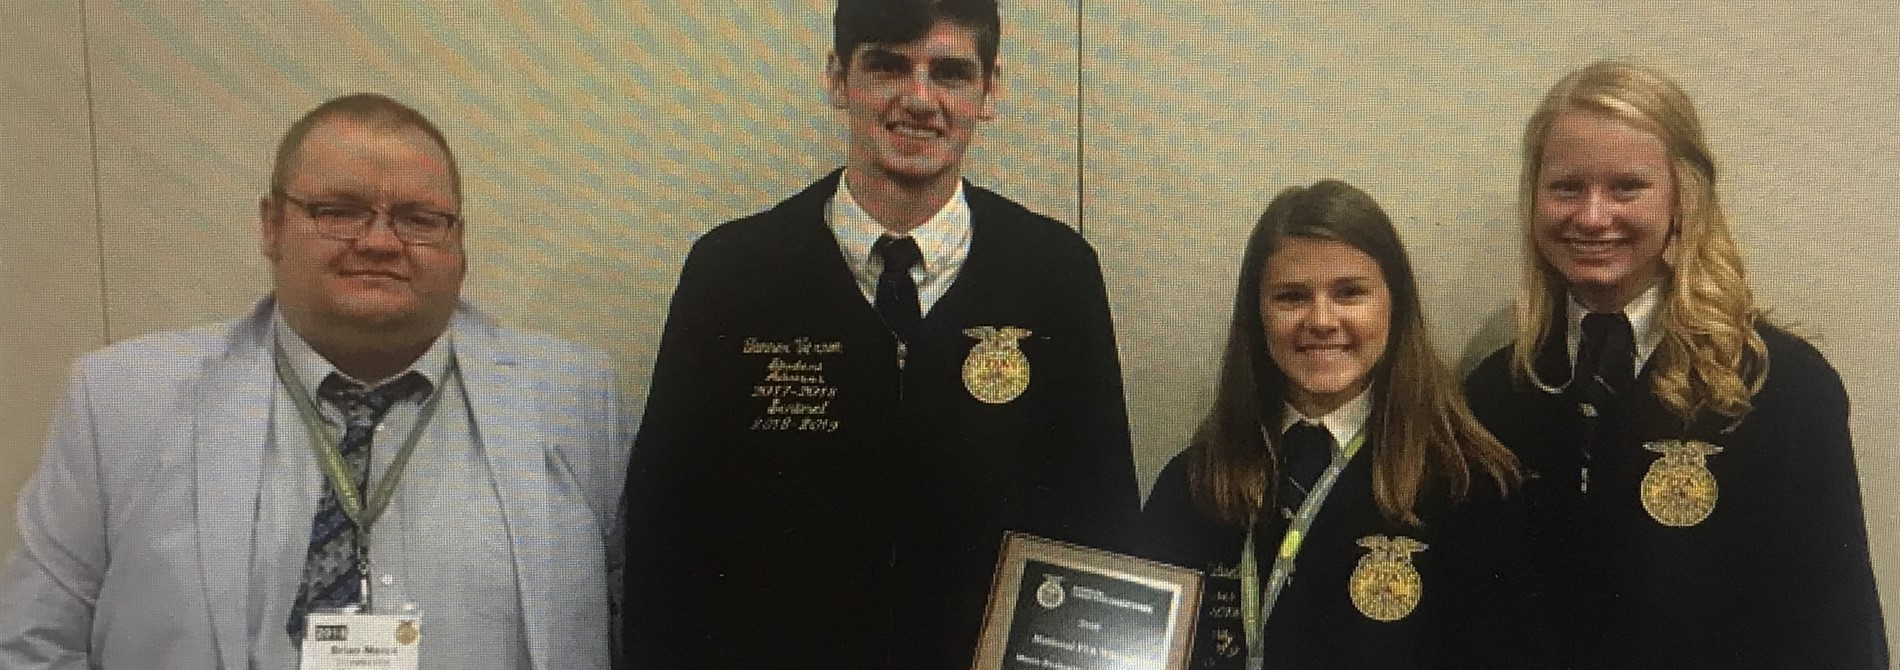 Congrats! Placed 12th in National Meats Contest!